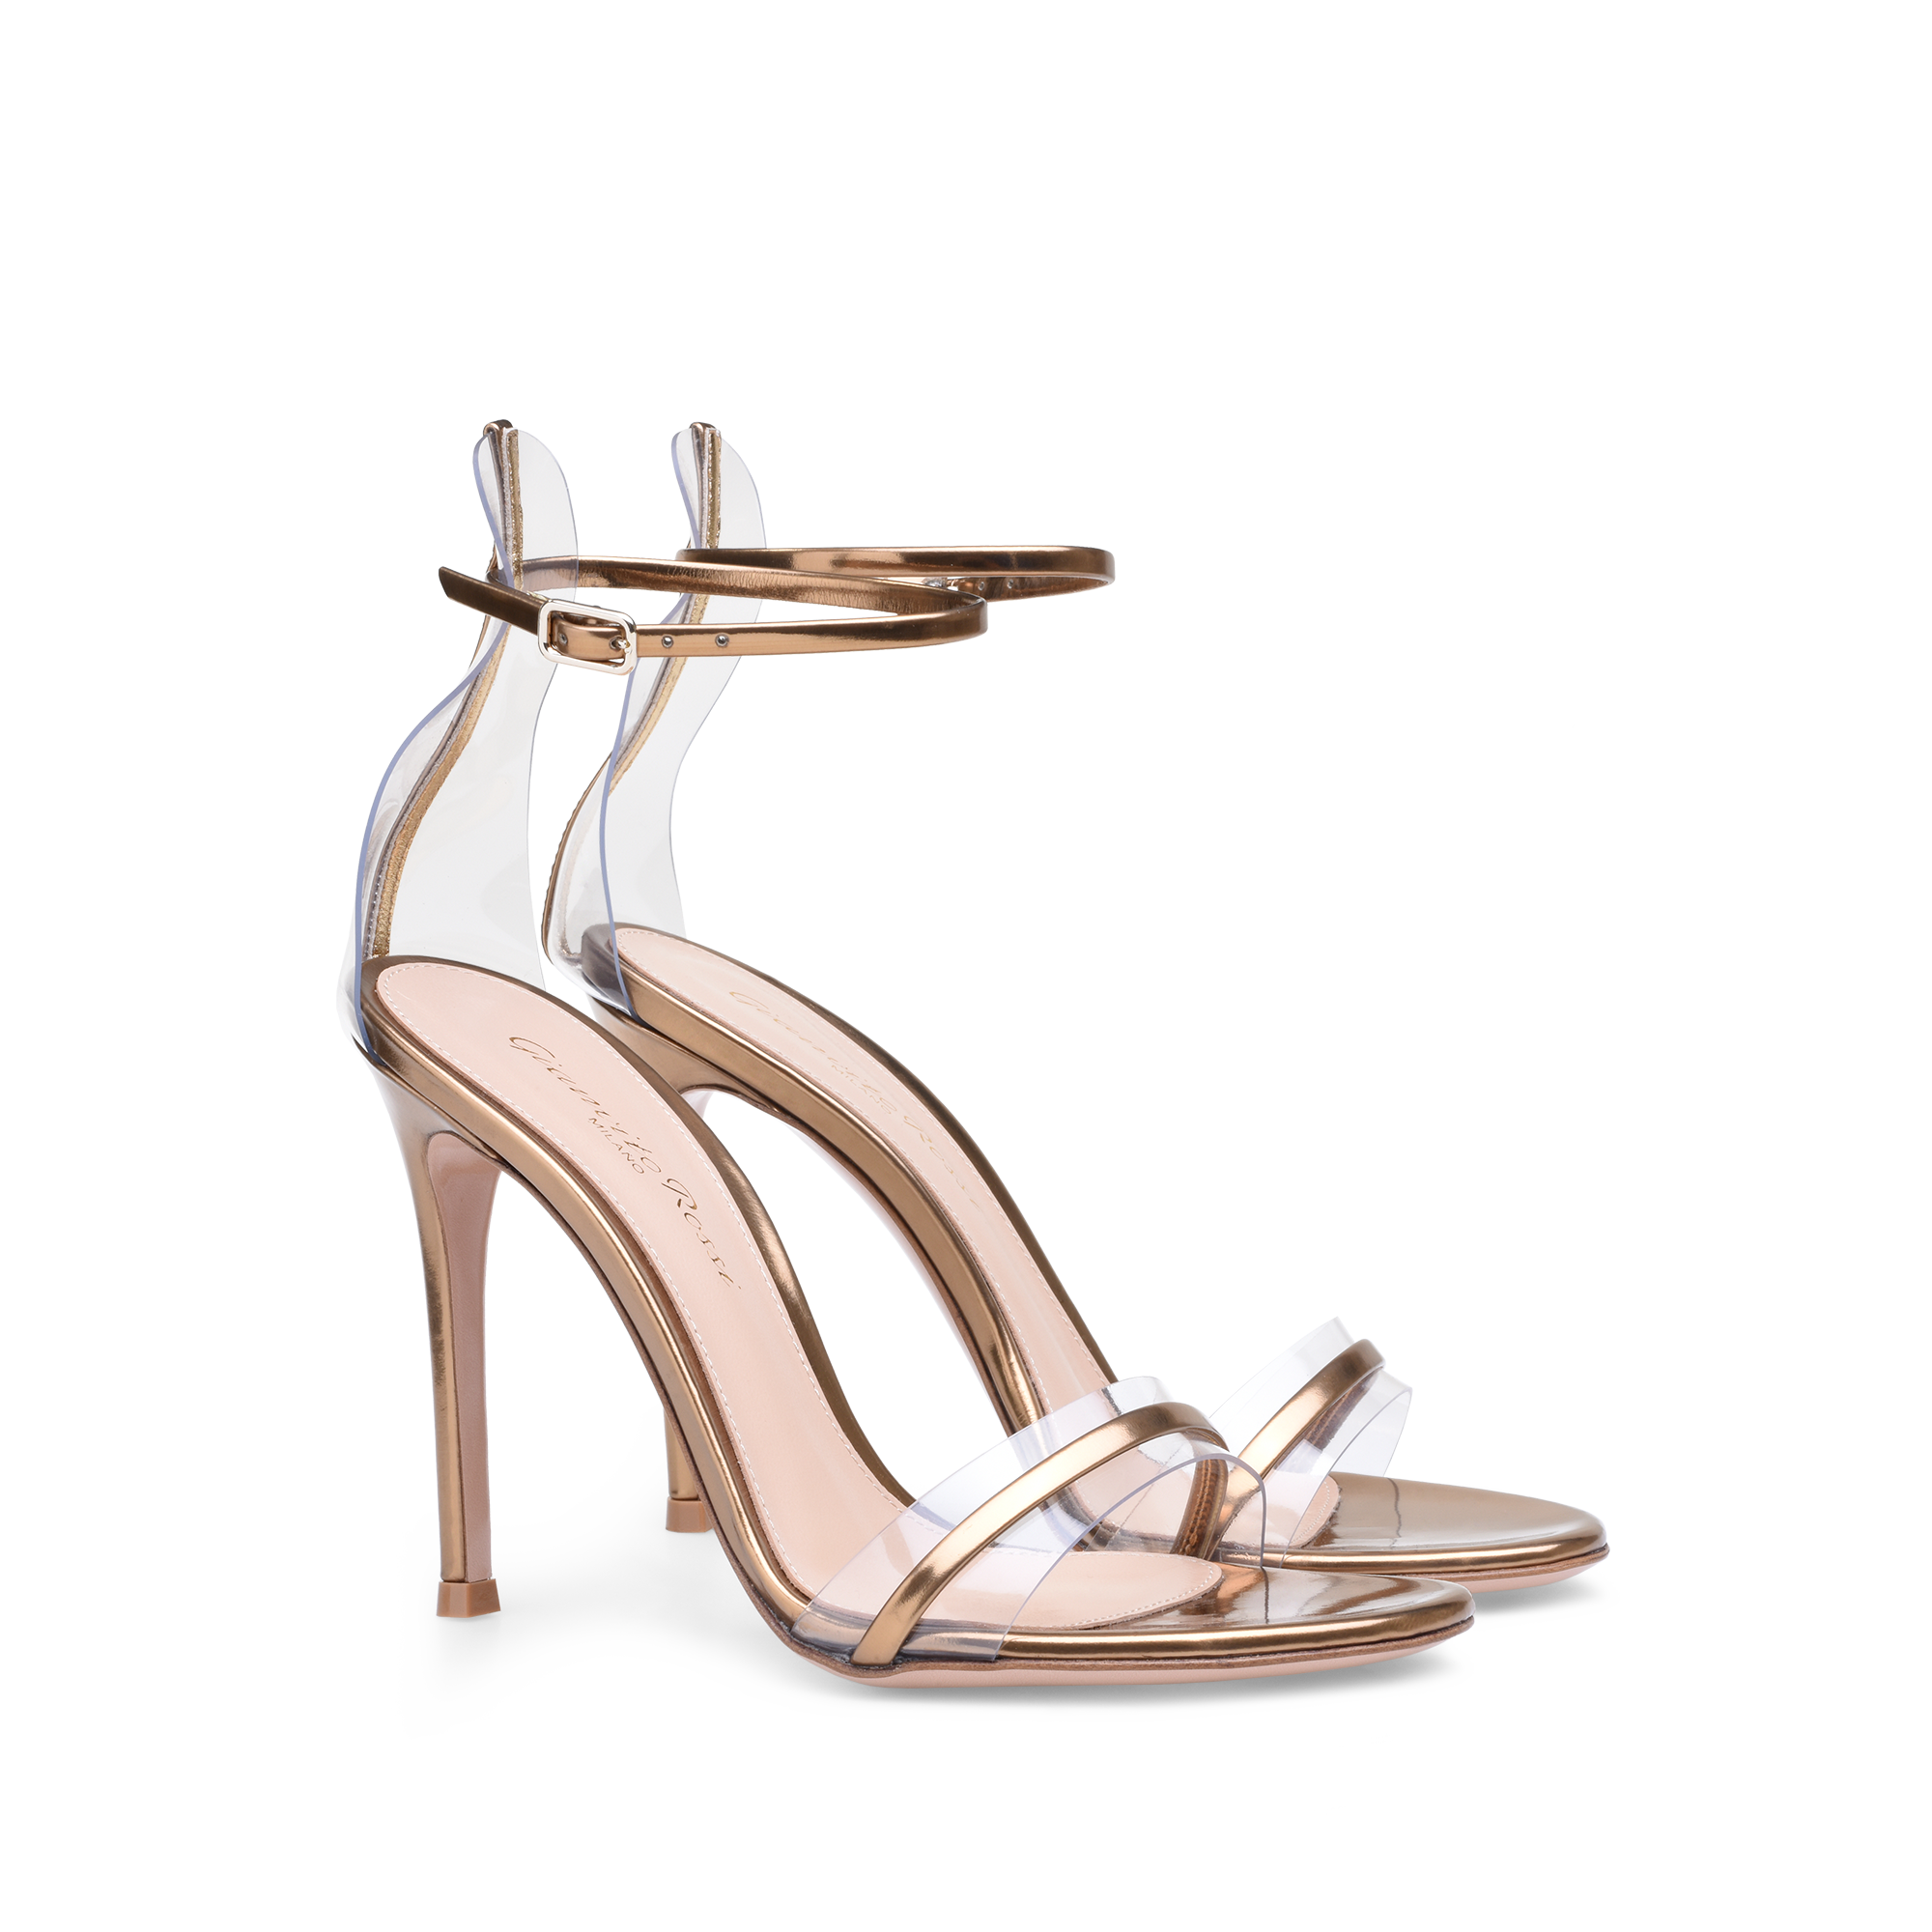 2616b05ec7d0 Pin by Iris Ntanakos on shoes Gianvito Rossi -Sergio Rossi